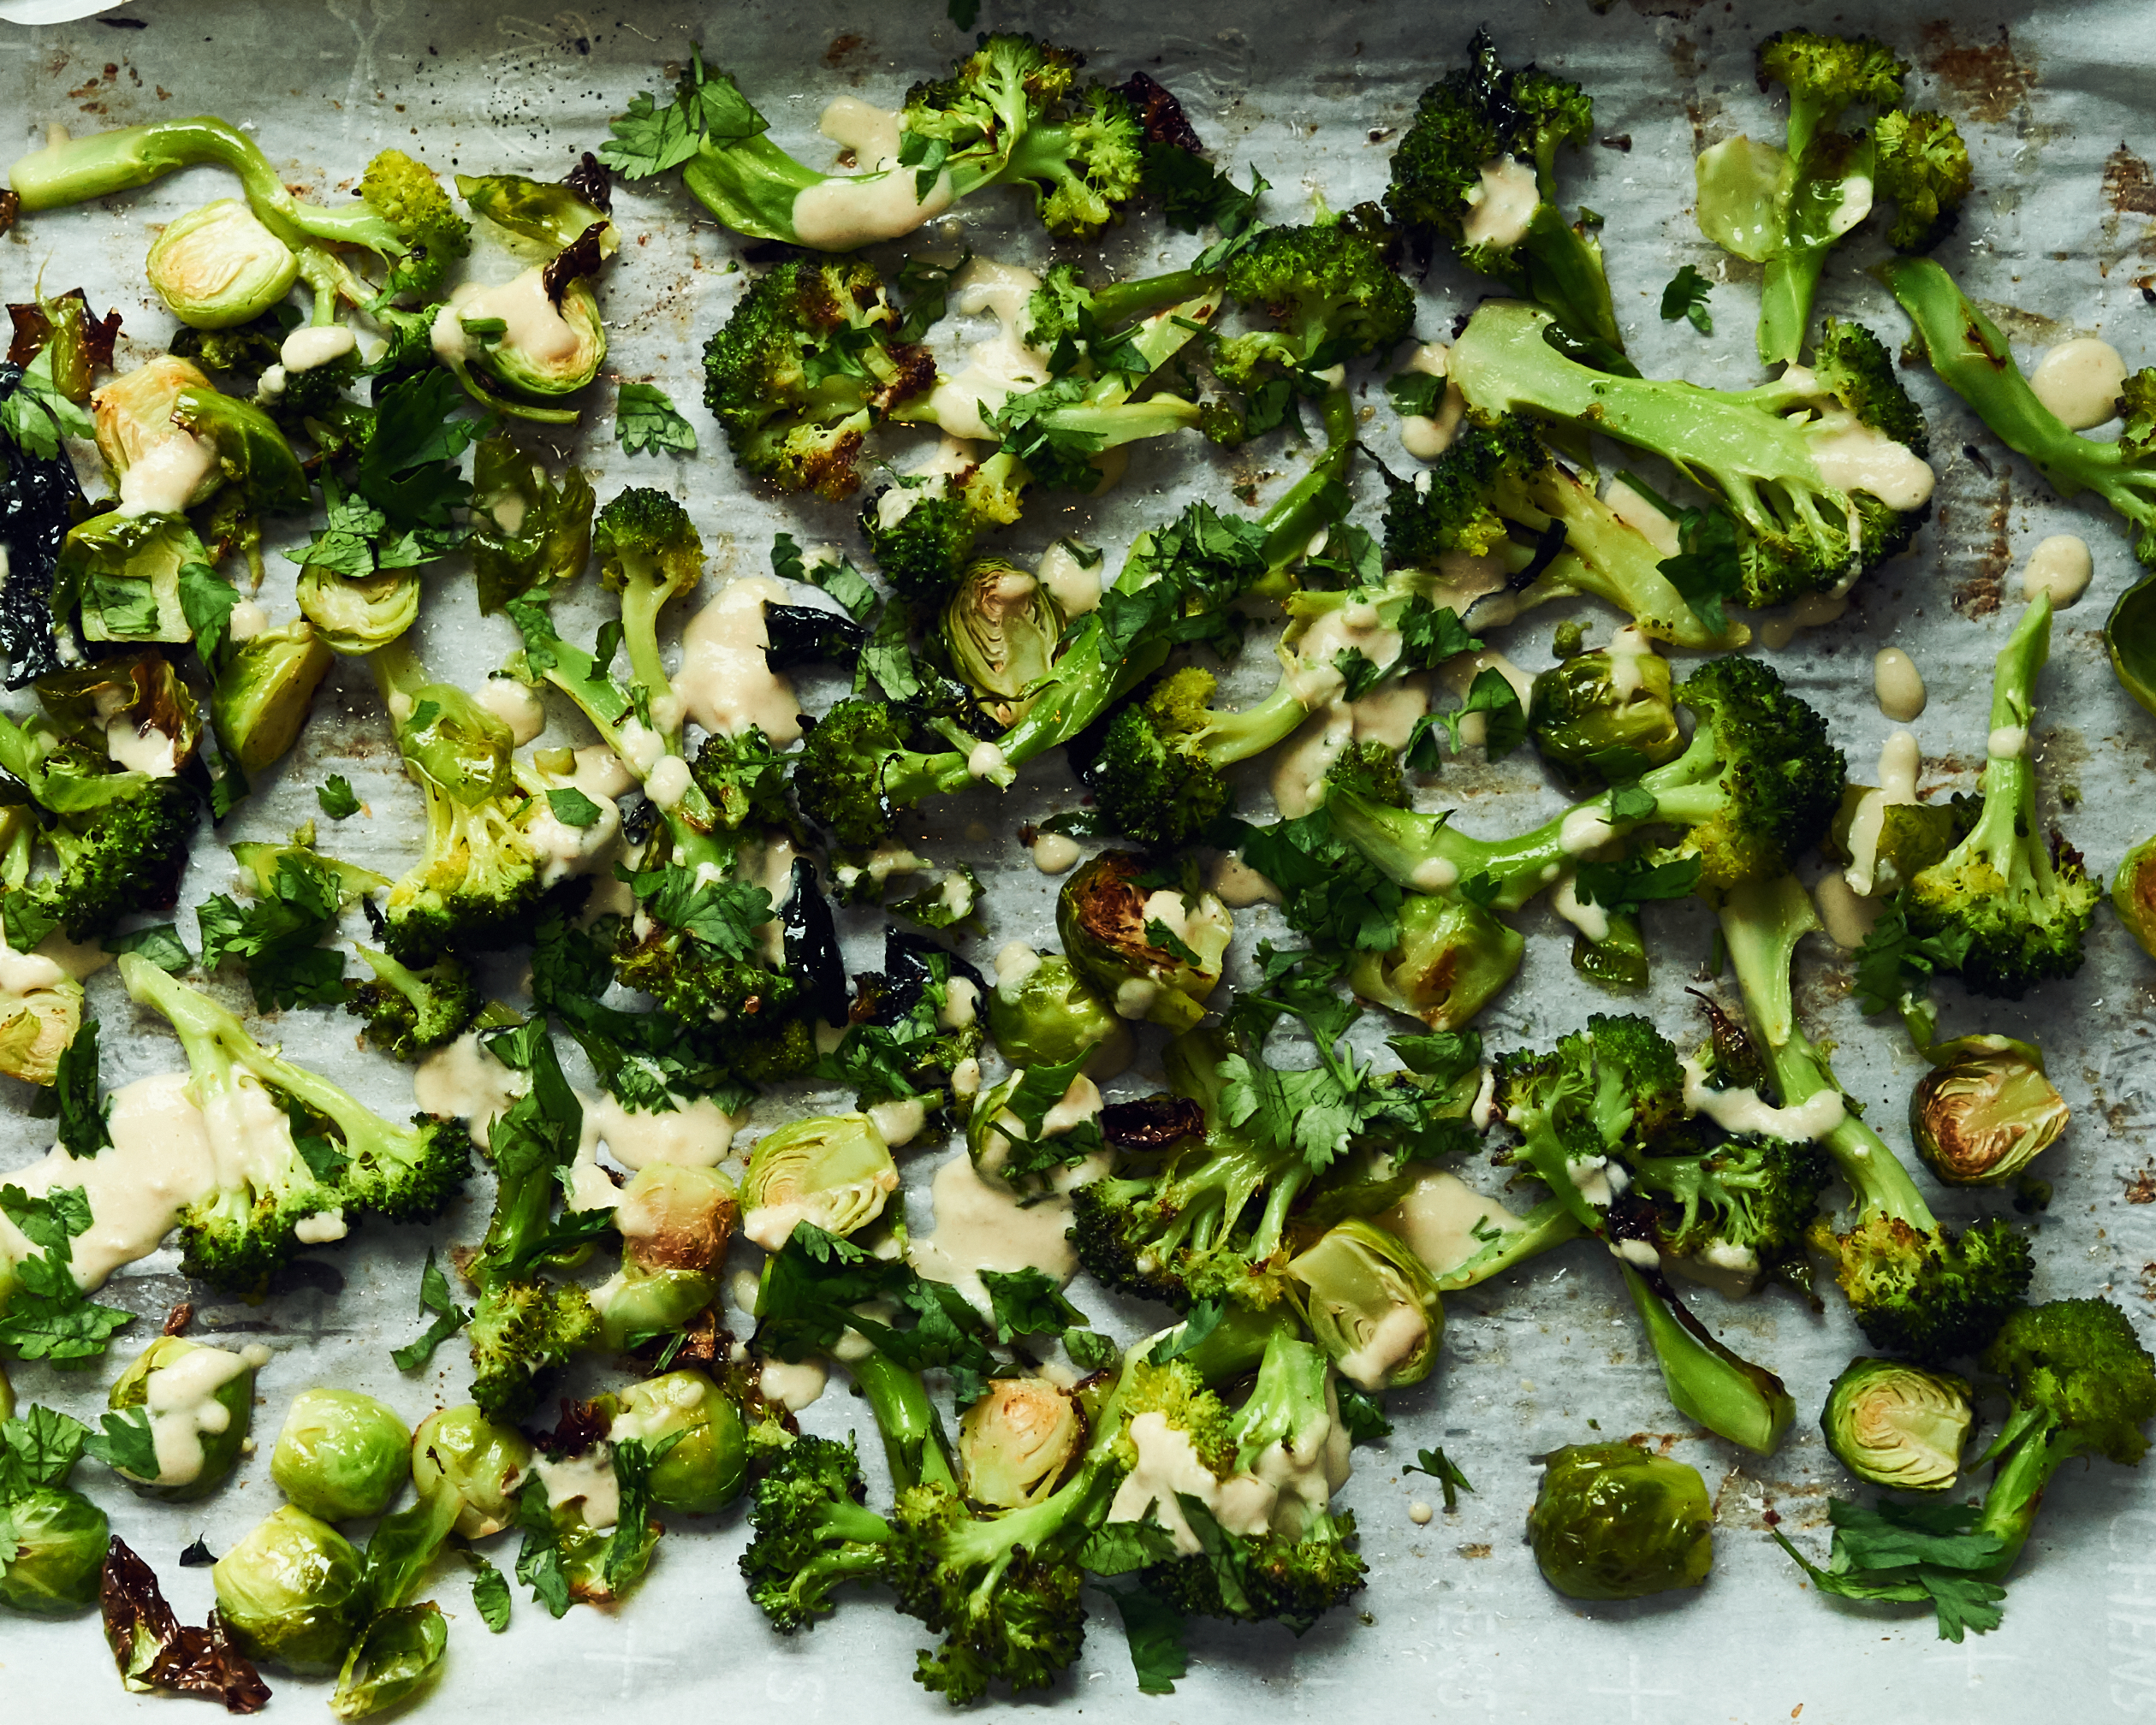 This is a photo of roasted broccoli and Brussels sprouts with tahini lemon drizzle. These veggies are all good for cancer prevention.